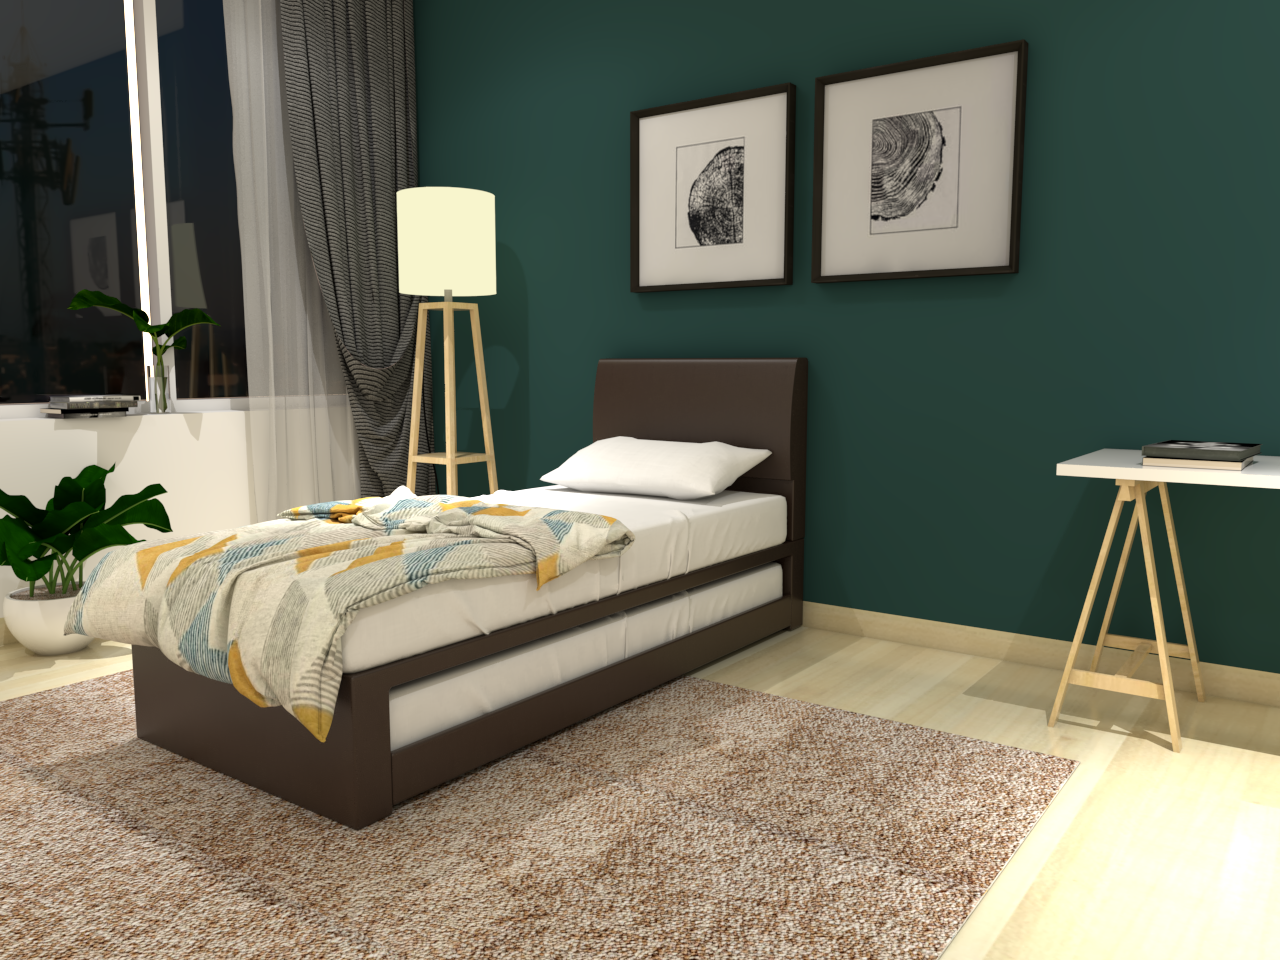 Buy Affordable Zander Faux Leather 3 In 1 Pull Out Bed At Megafurniture Sg Shop Explore Our Wide Range Of High Quality Designer Bed Frames For Bedroom Interior Design In Singapore